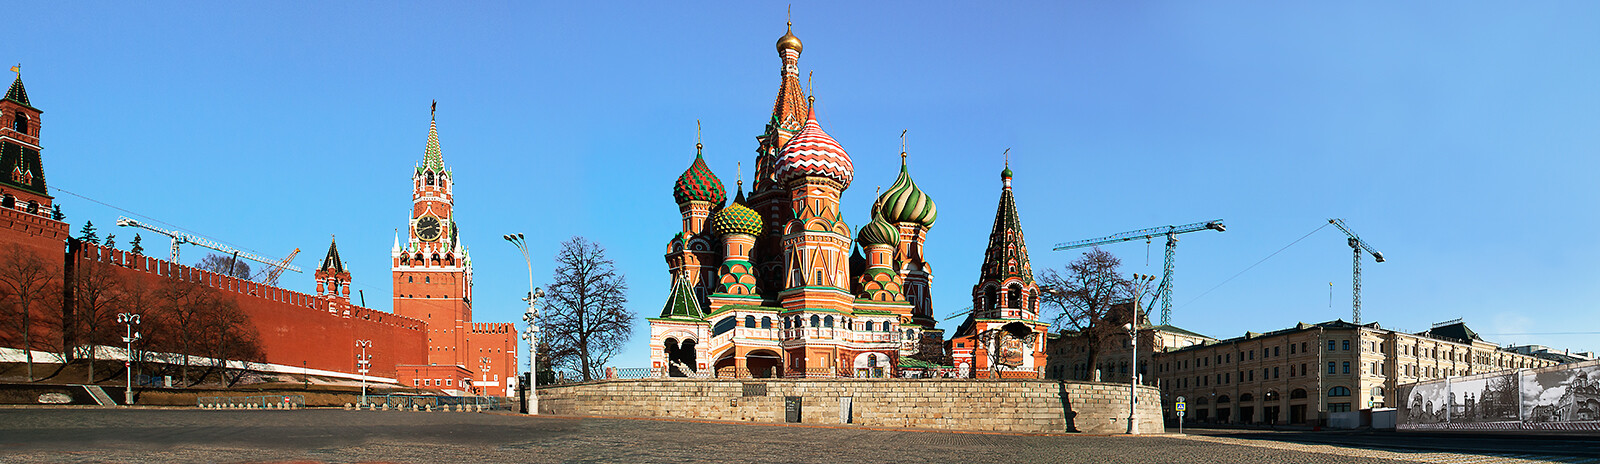 Moscow, St. Basil´s Cathedral von Larry Yust